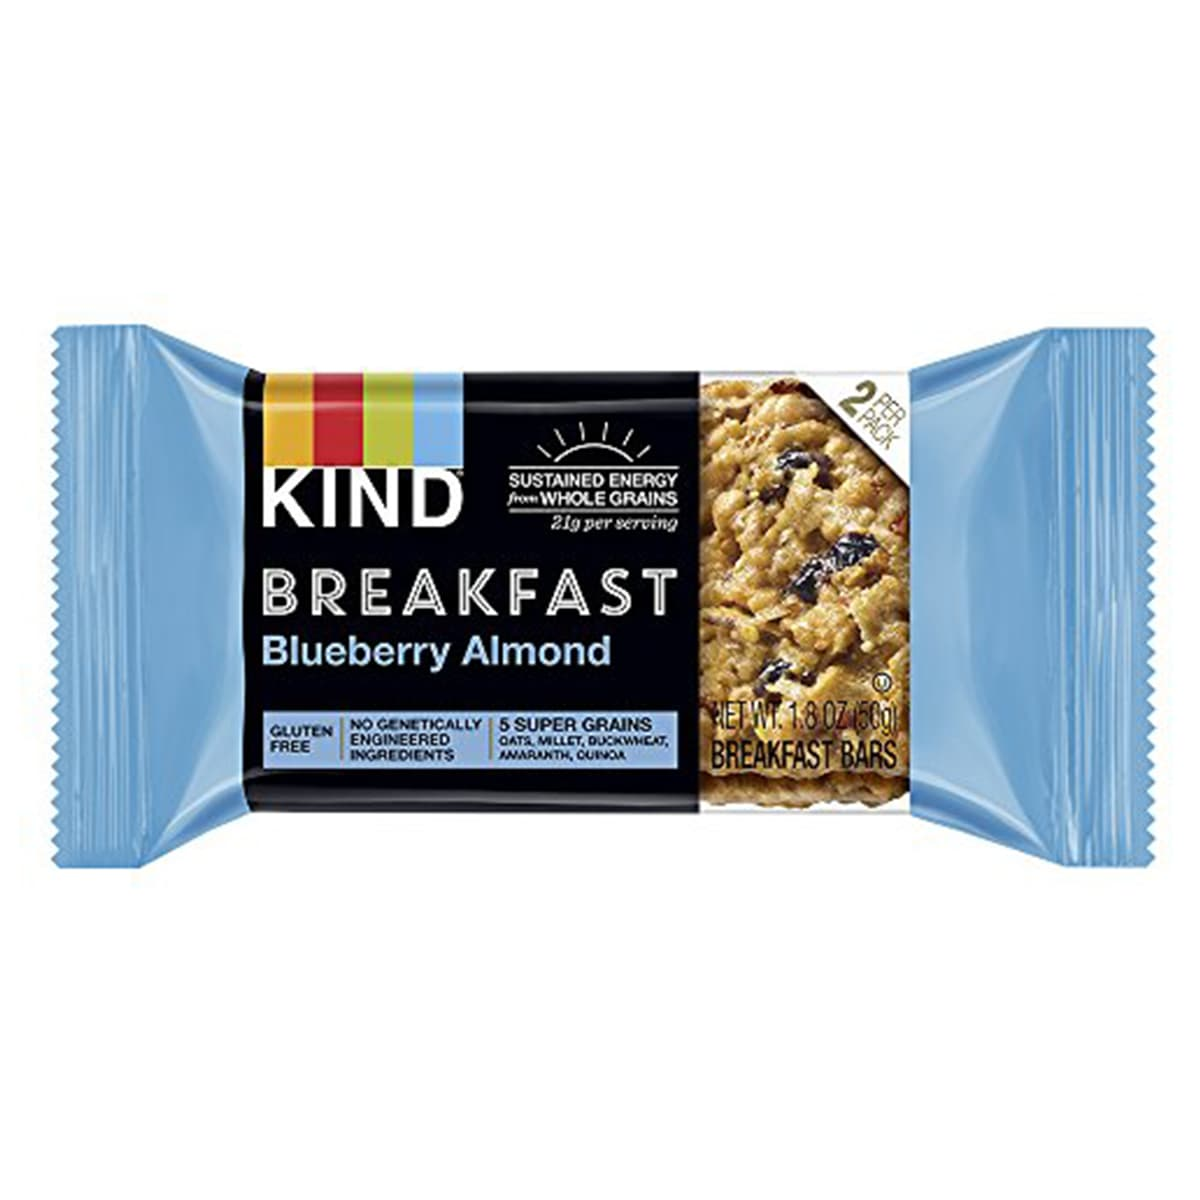 10 Grocery Store Finds for Grab-and-Go Breakfasts: gallery image 4